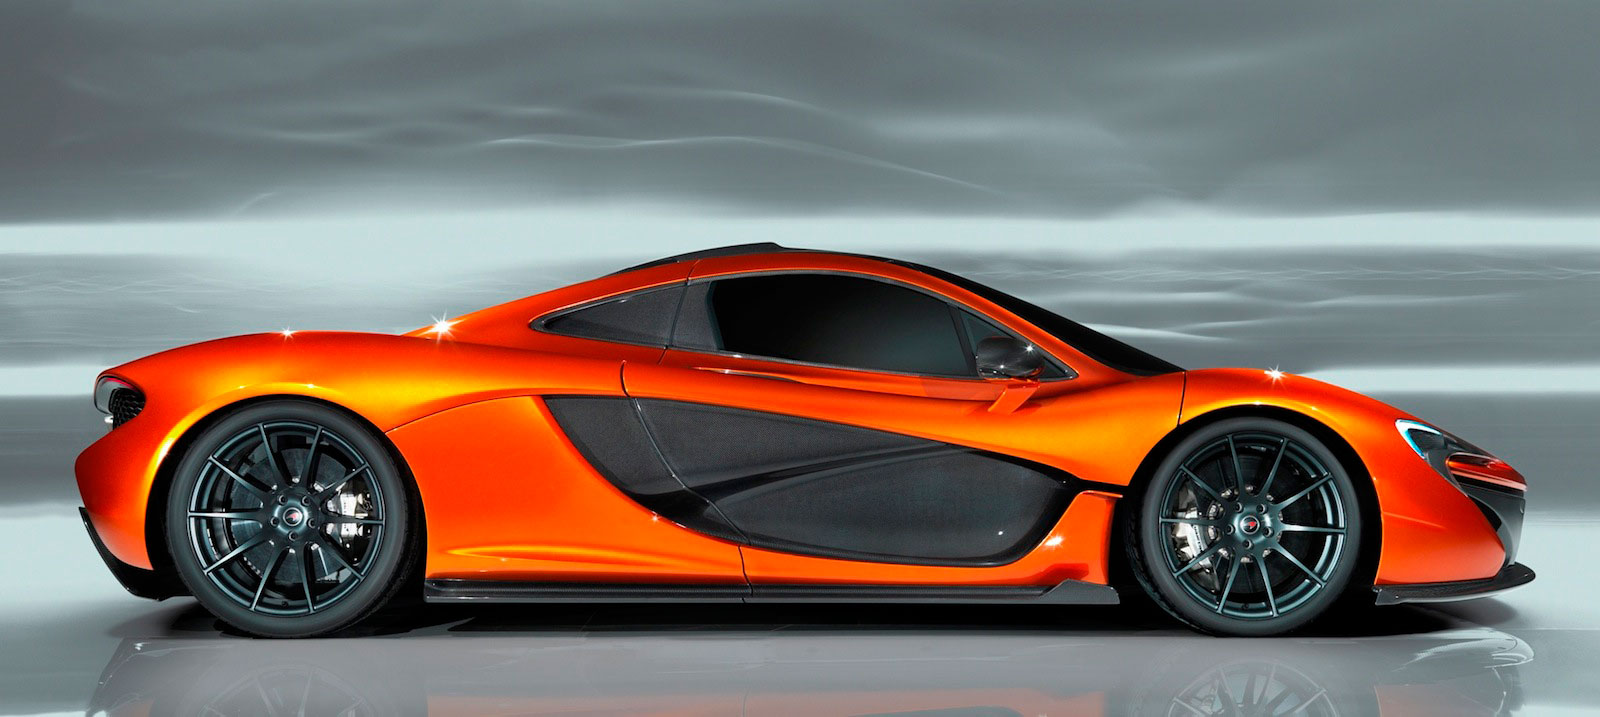 http://images.cdn.autocar.co.uk/sites/autocar.co.uk/files/mclaren-p1-3_0.jpg